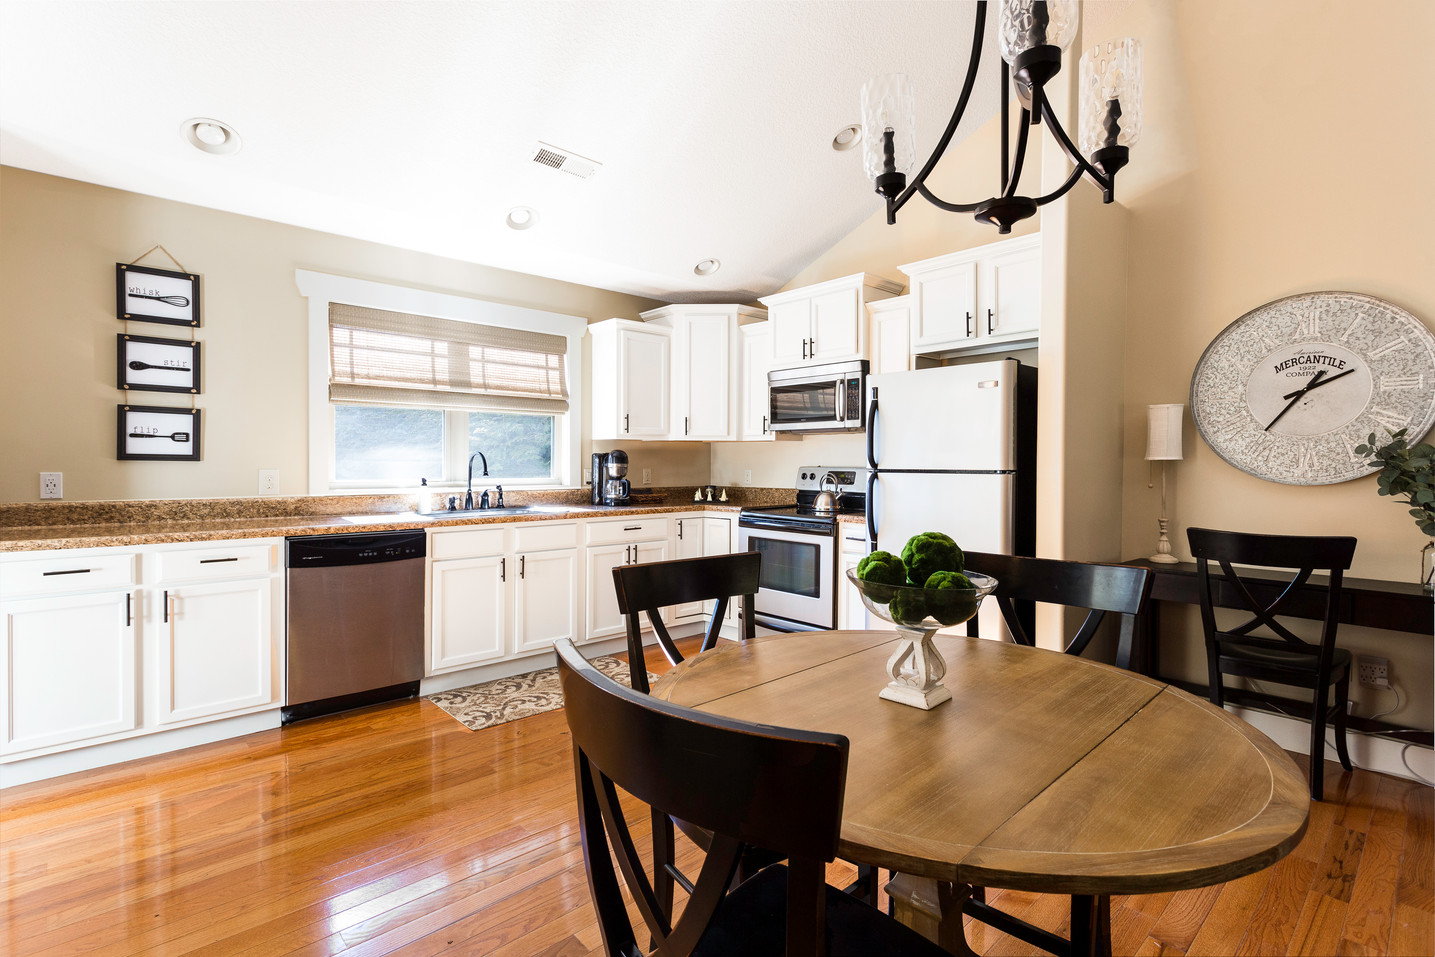 The Dogwood's luxurious kitchen with updated appliances